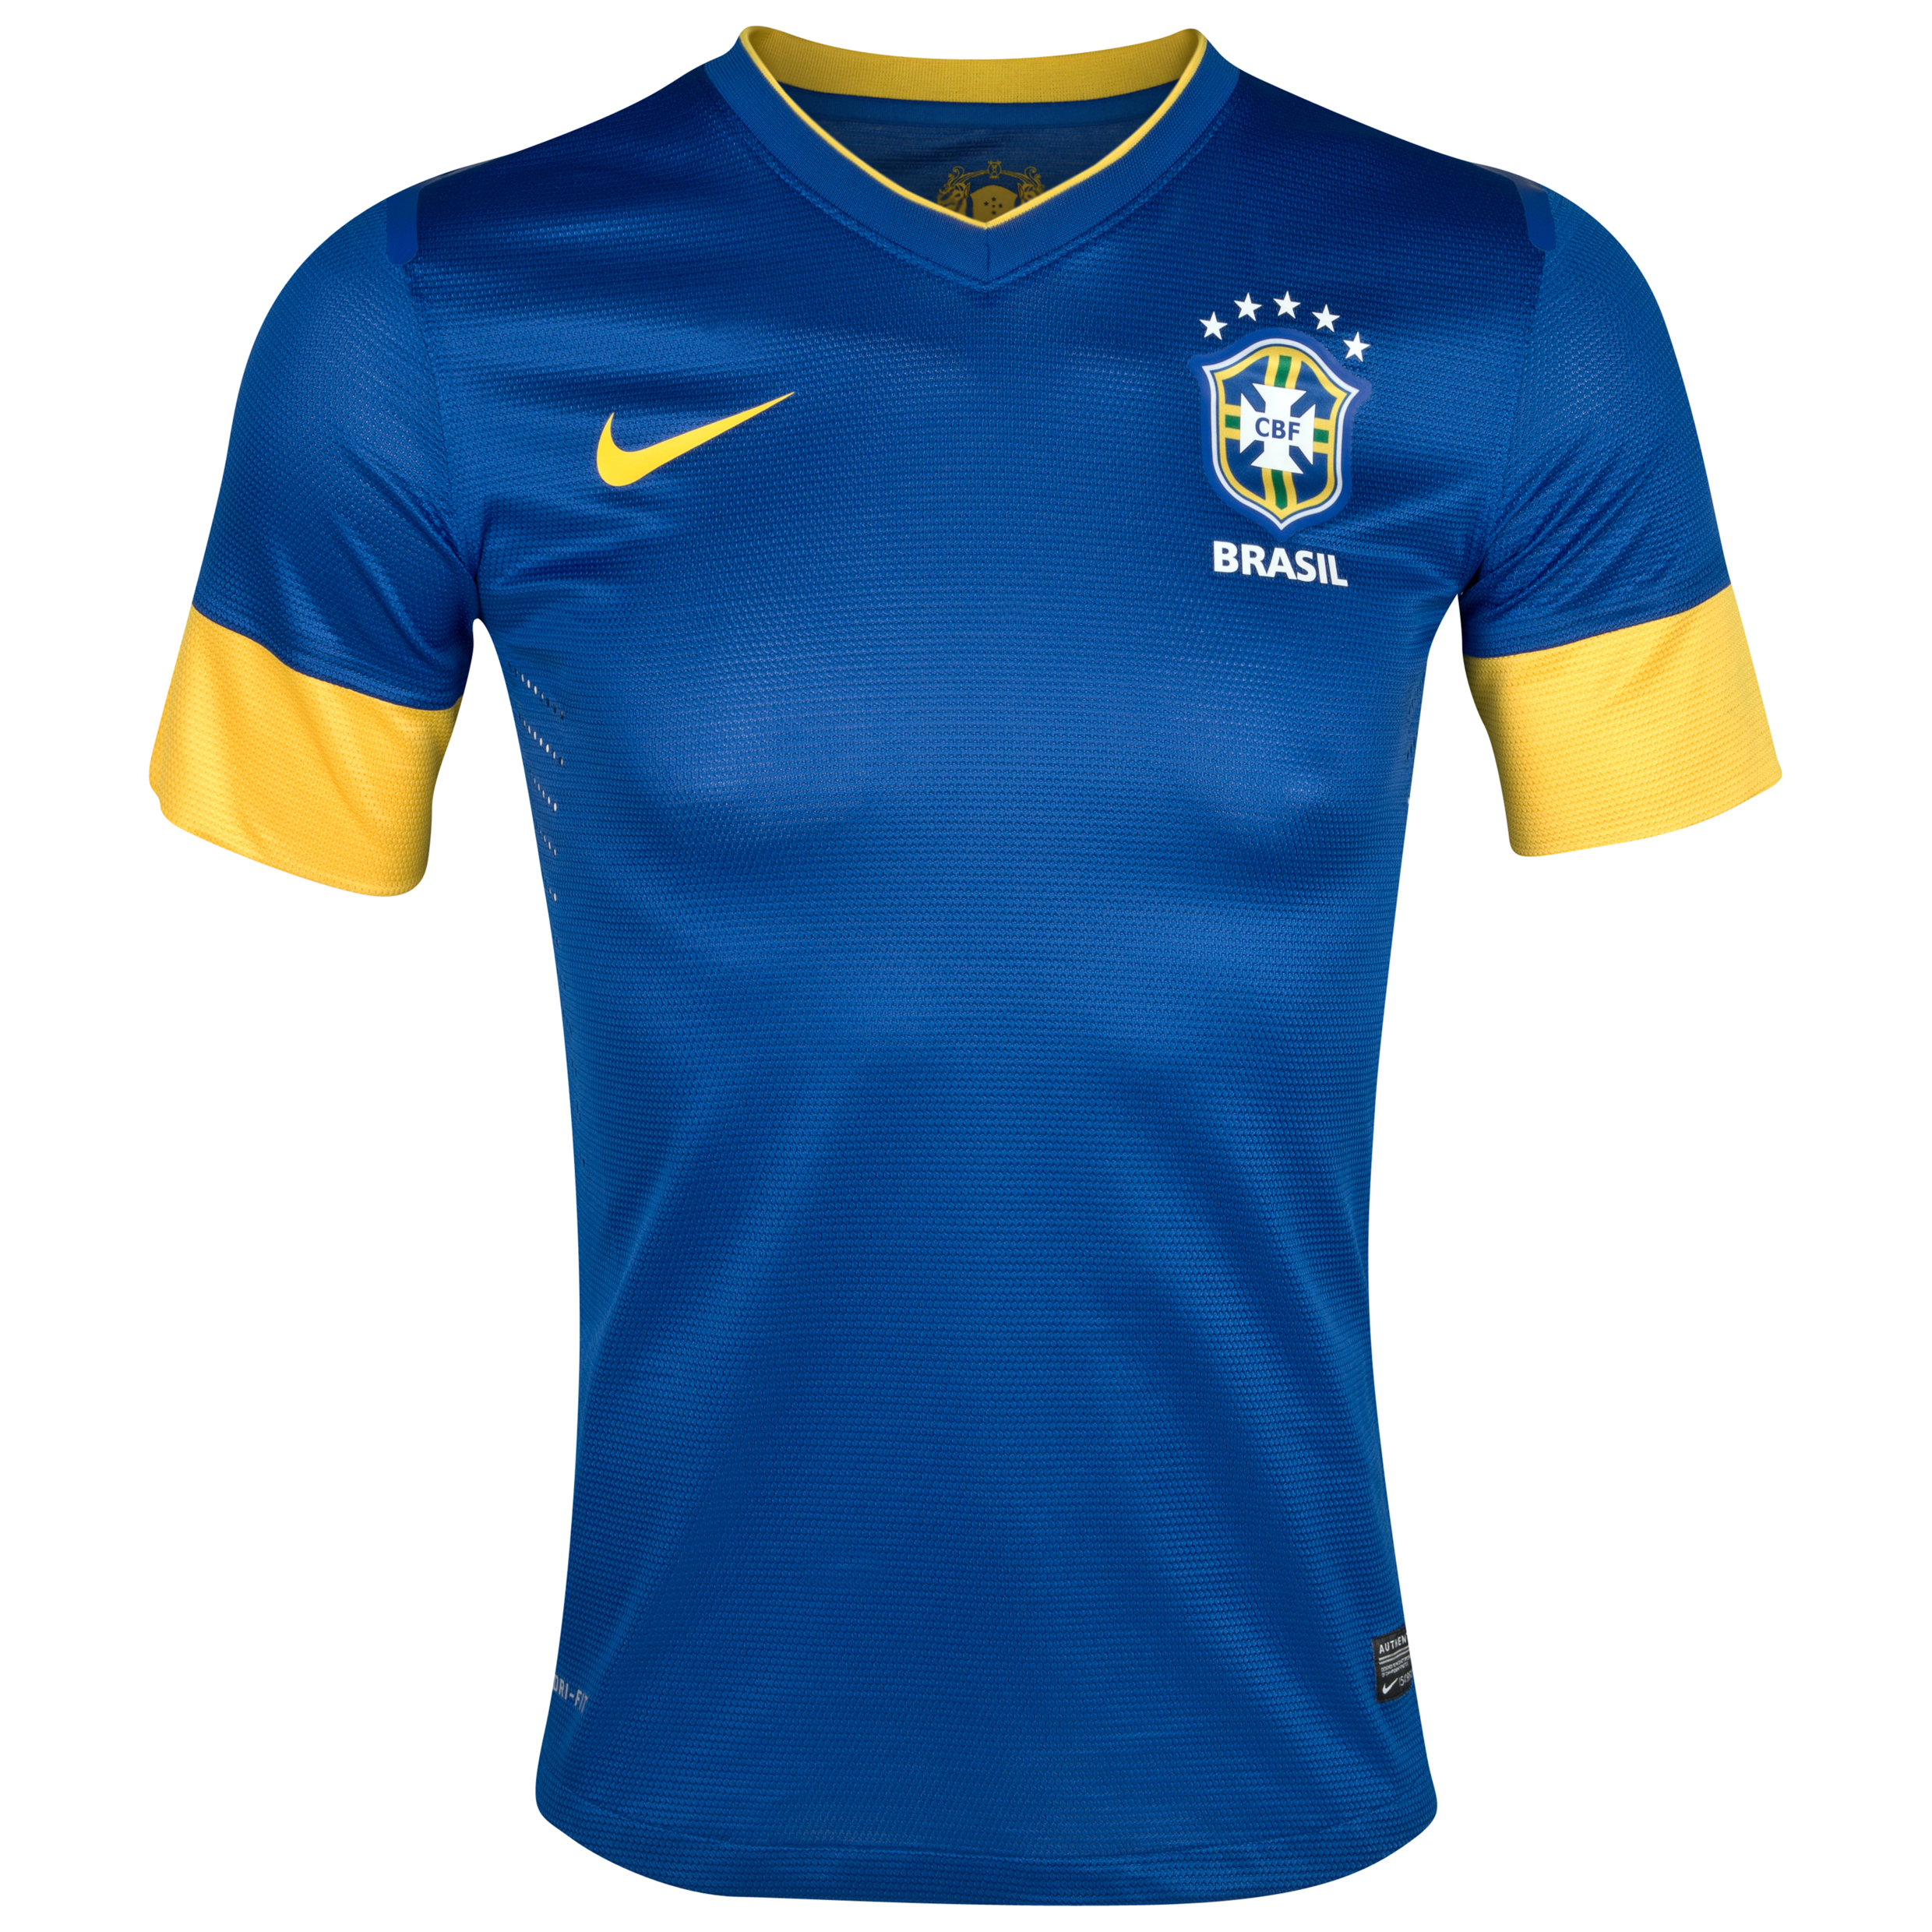 Brazil Authentic Away Shirt 2012/13